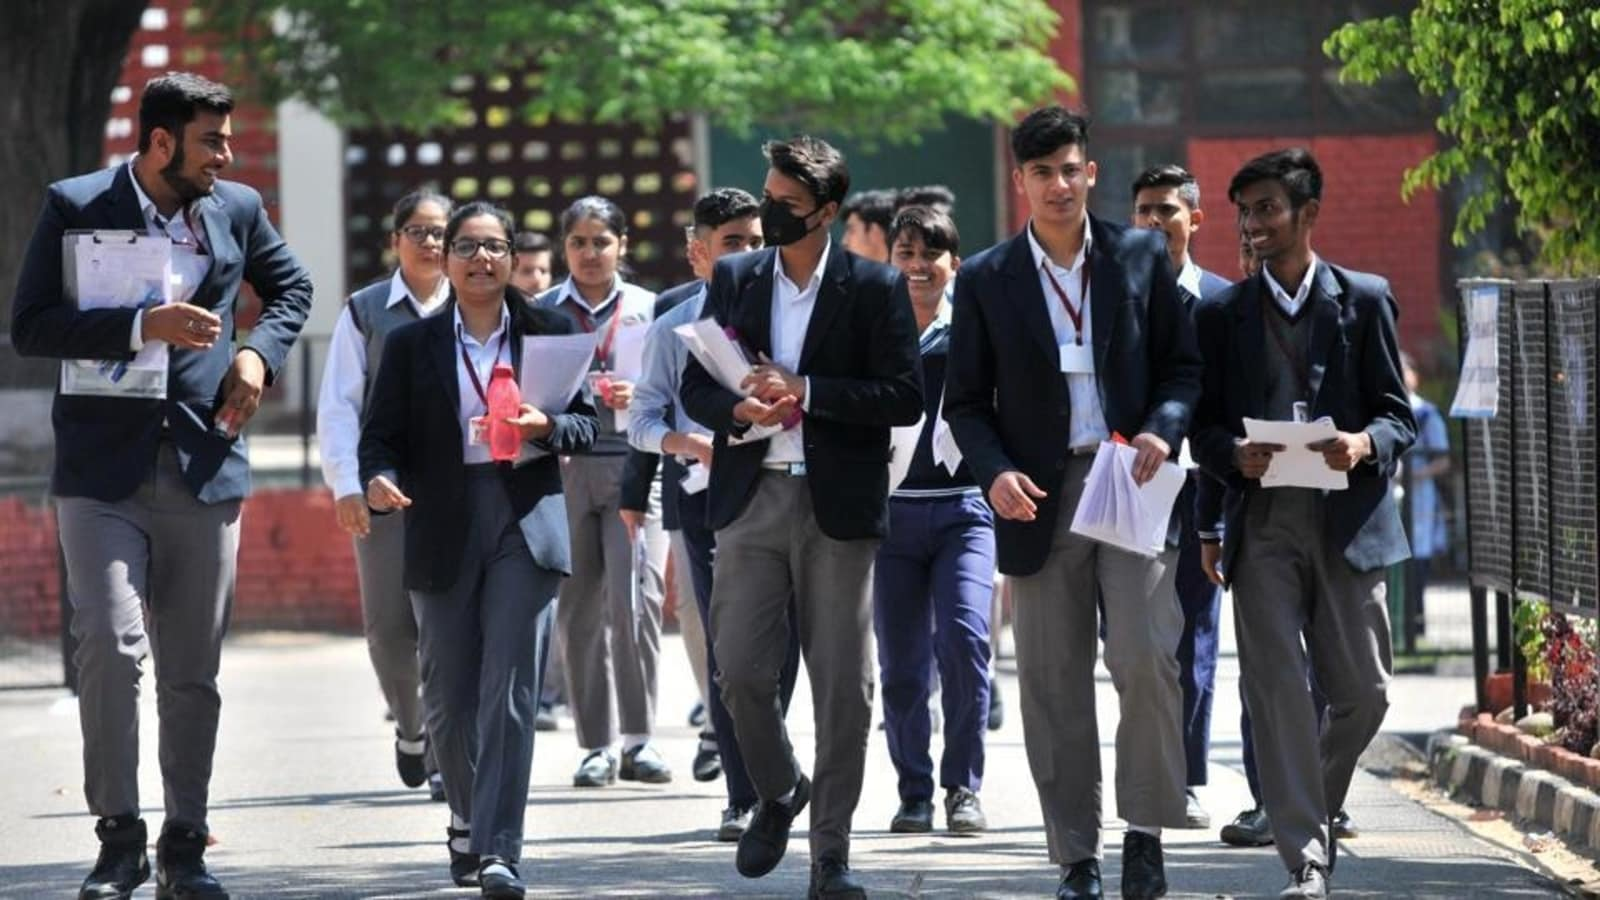 Haryana Board HBSE 12th Result 2021 Declared: 100% pass in BSEH class 12 results